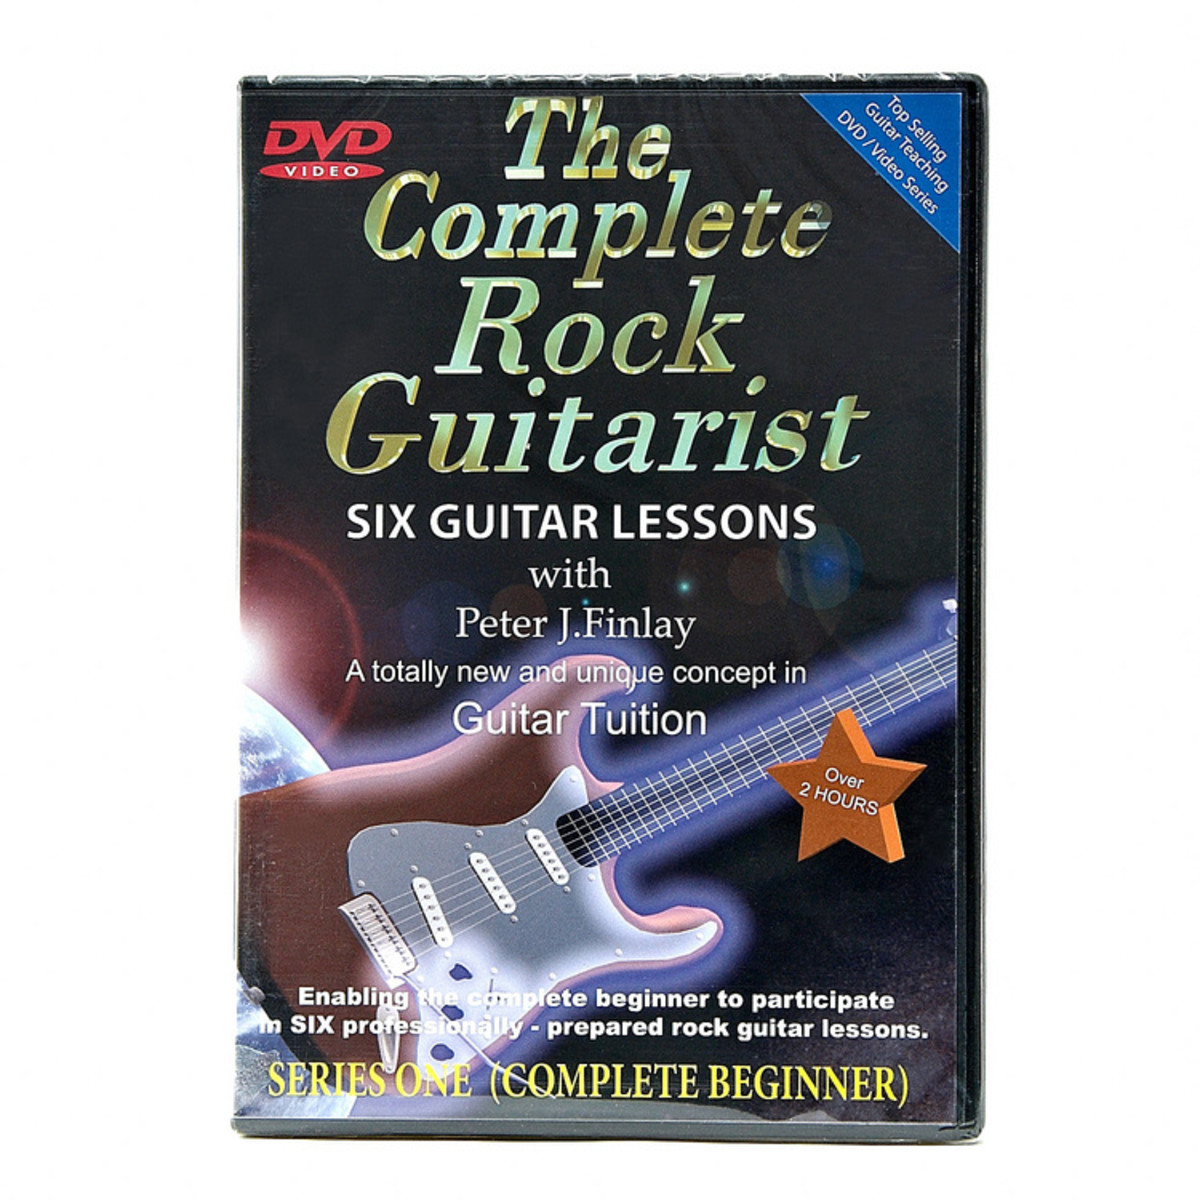 The Complete Rock Guitarist Dvd Series 1 At Gear4music